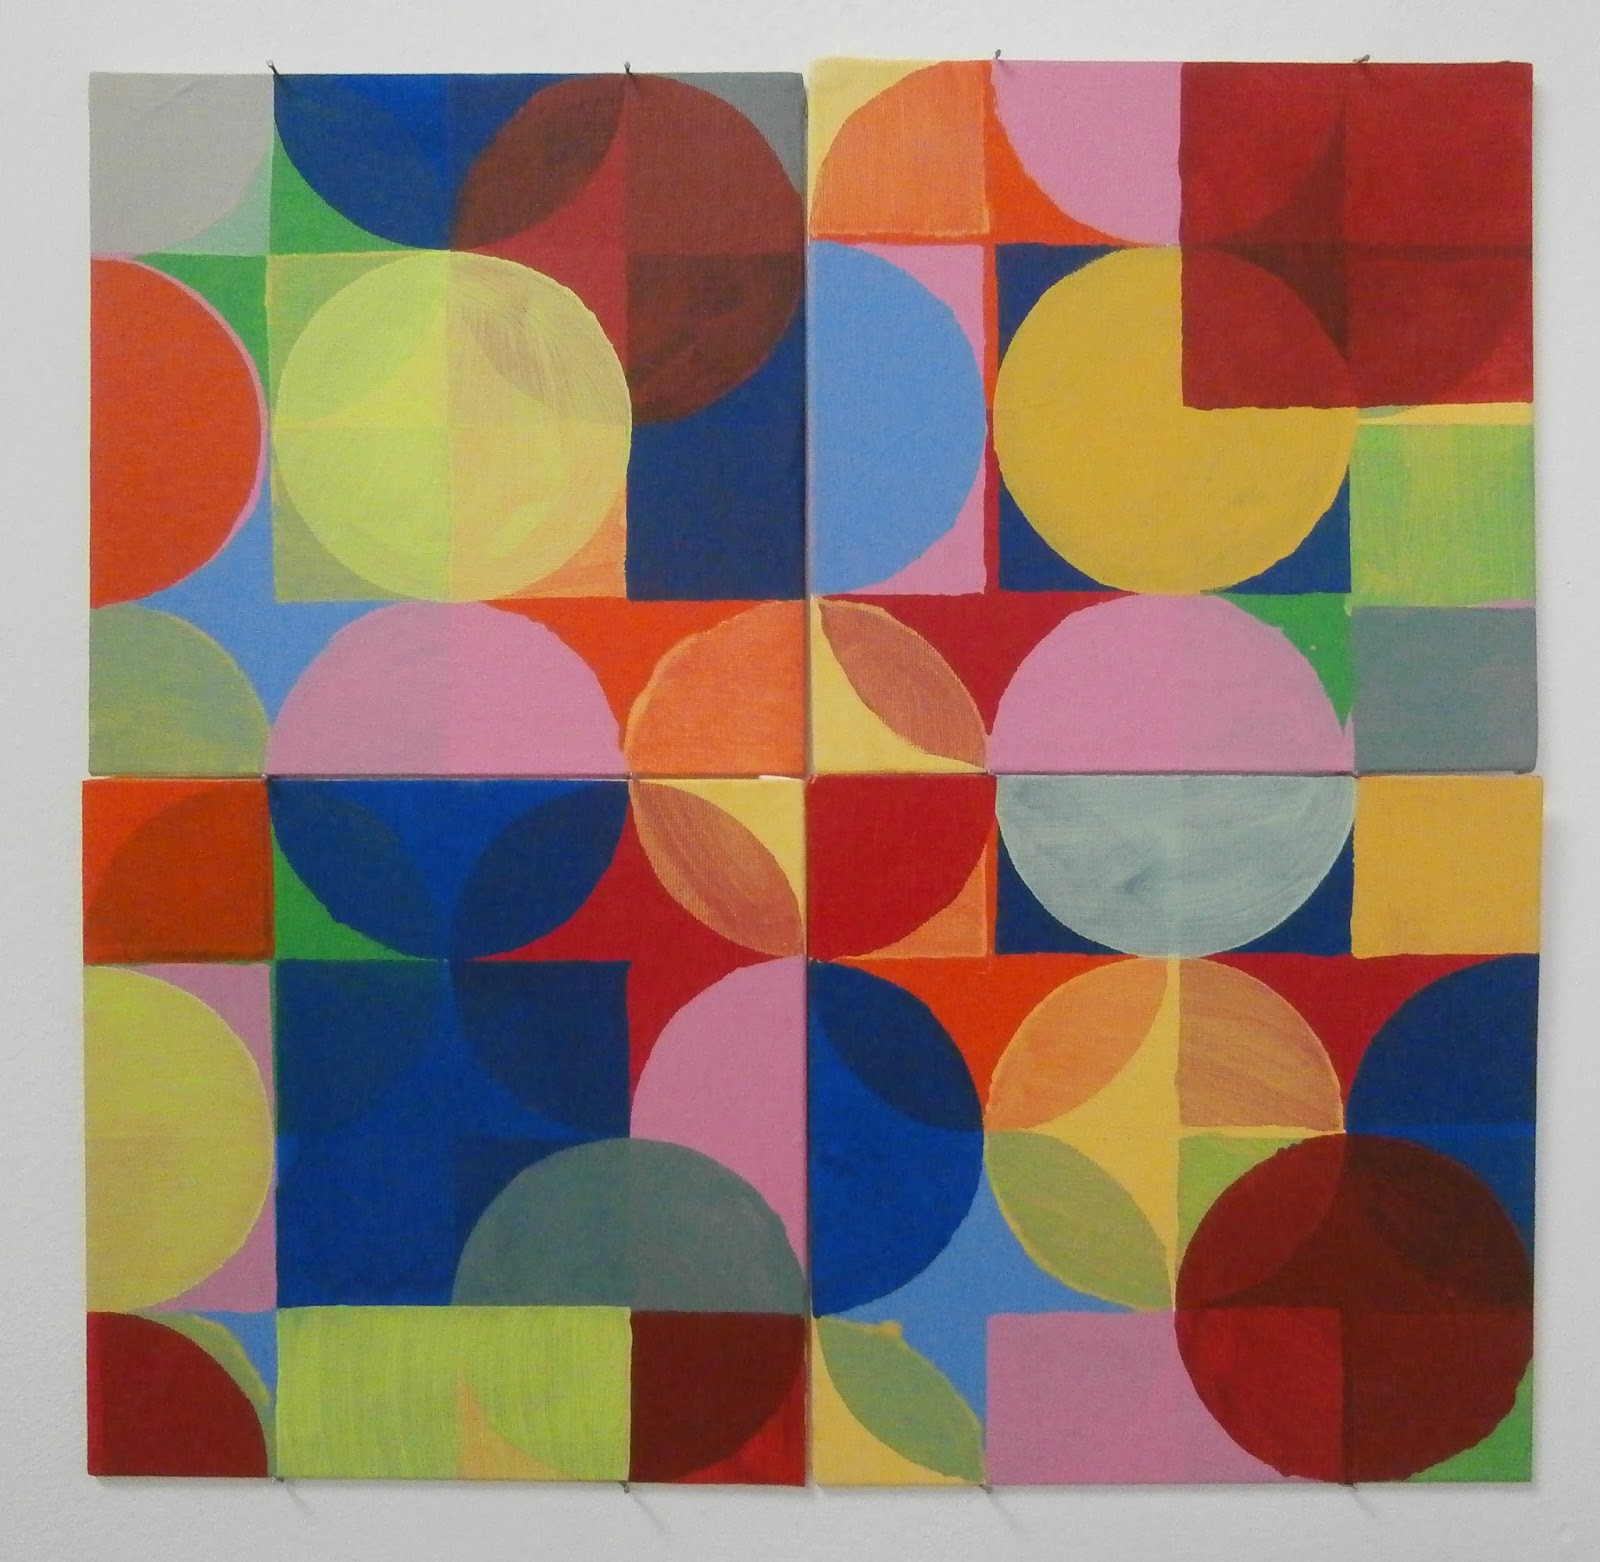 circle square acrylic, kate mackay, painting, factory 49, geometric abstraction, non objective,